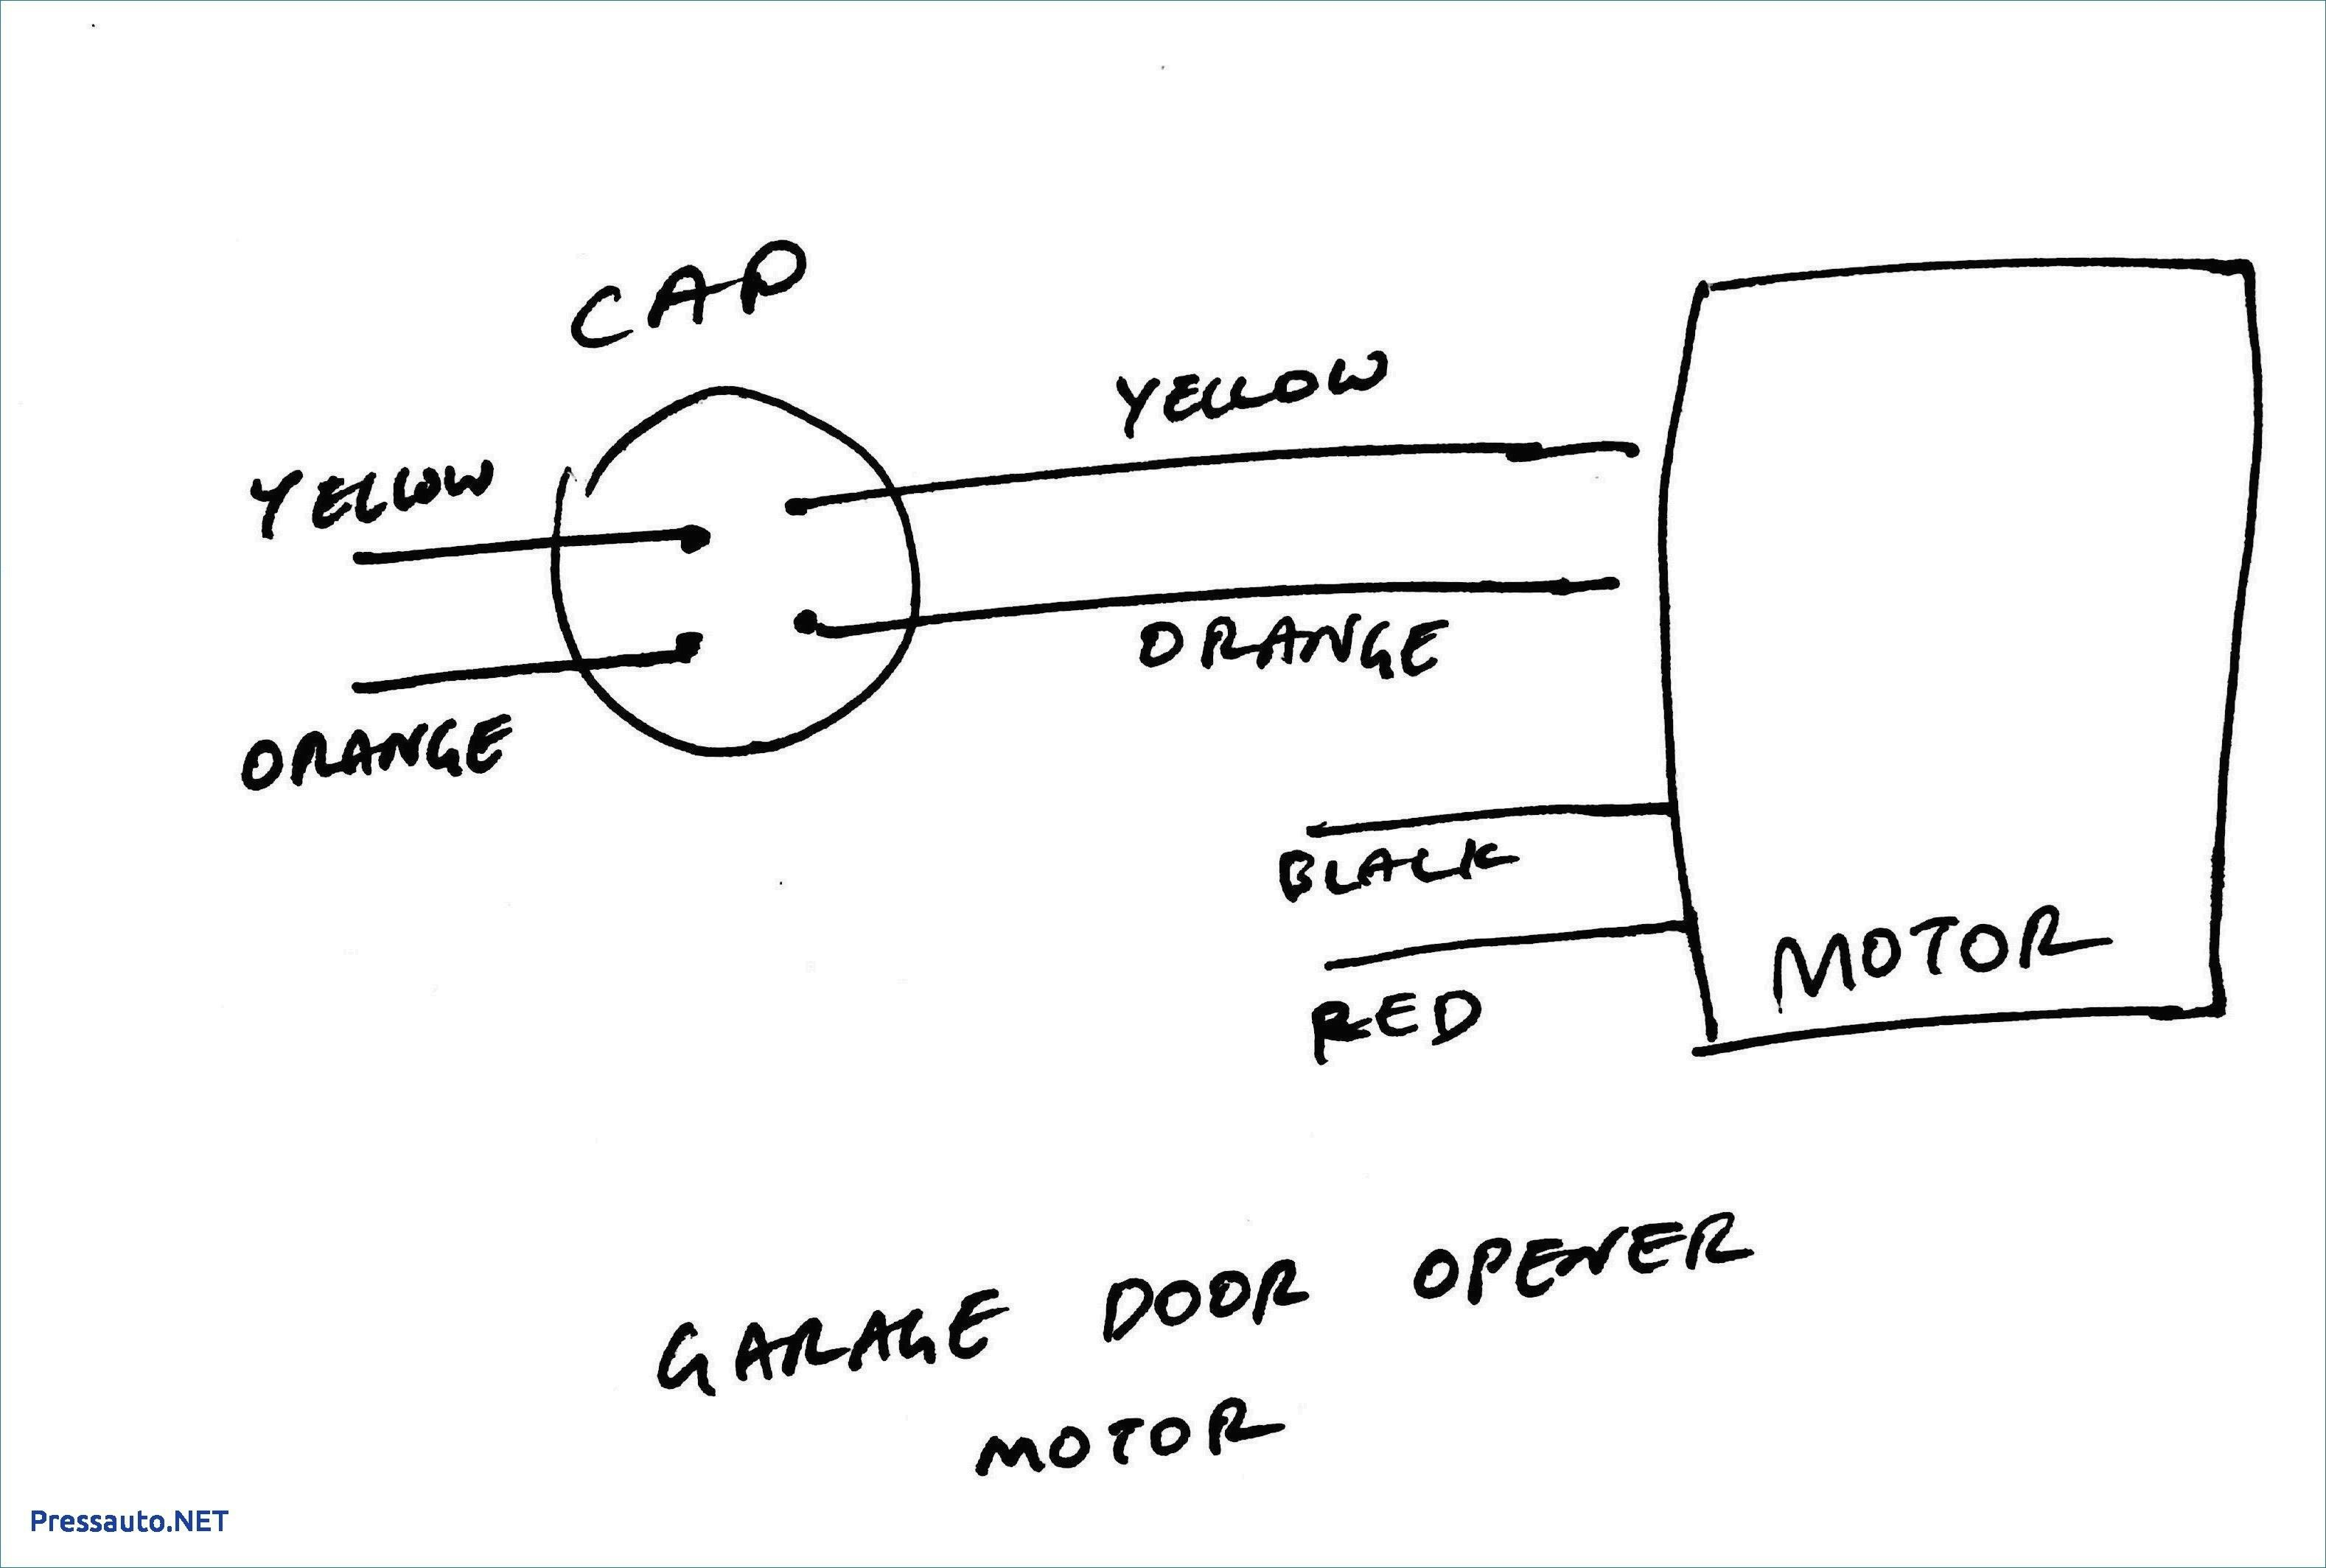 Unique Wiring Diagram Of An Extractor Fan Diagram Diagramsample Diagramtemplate Wiringdiagram Diagramchart Worksheet Diagram Diagram Chart Diagram Design